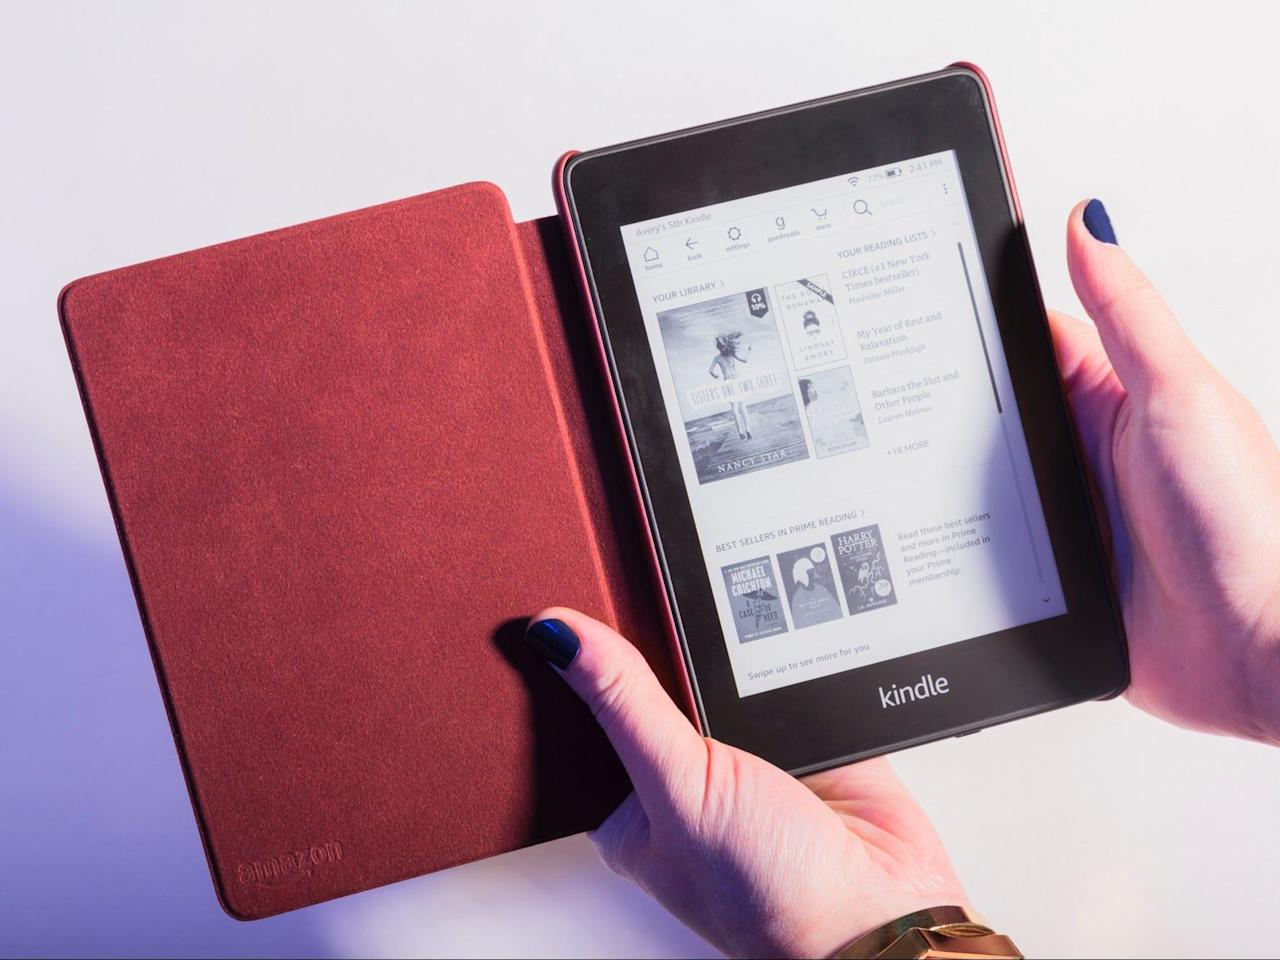 How to share your Kindle books in 2 different ways